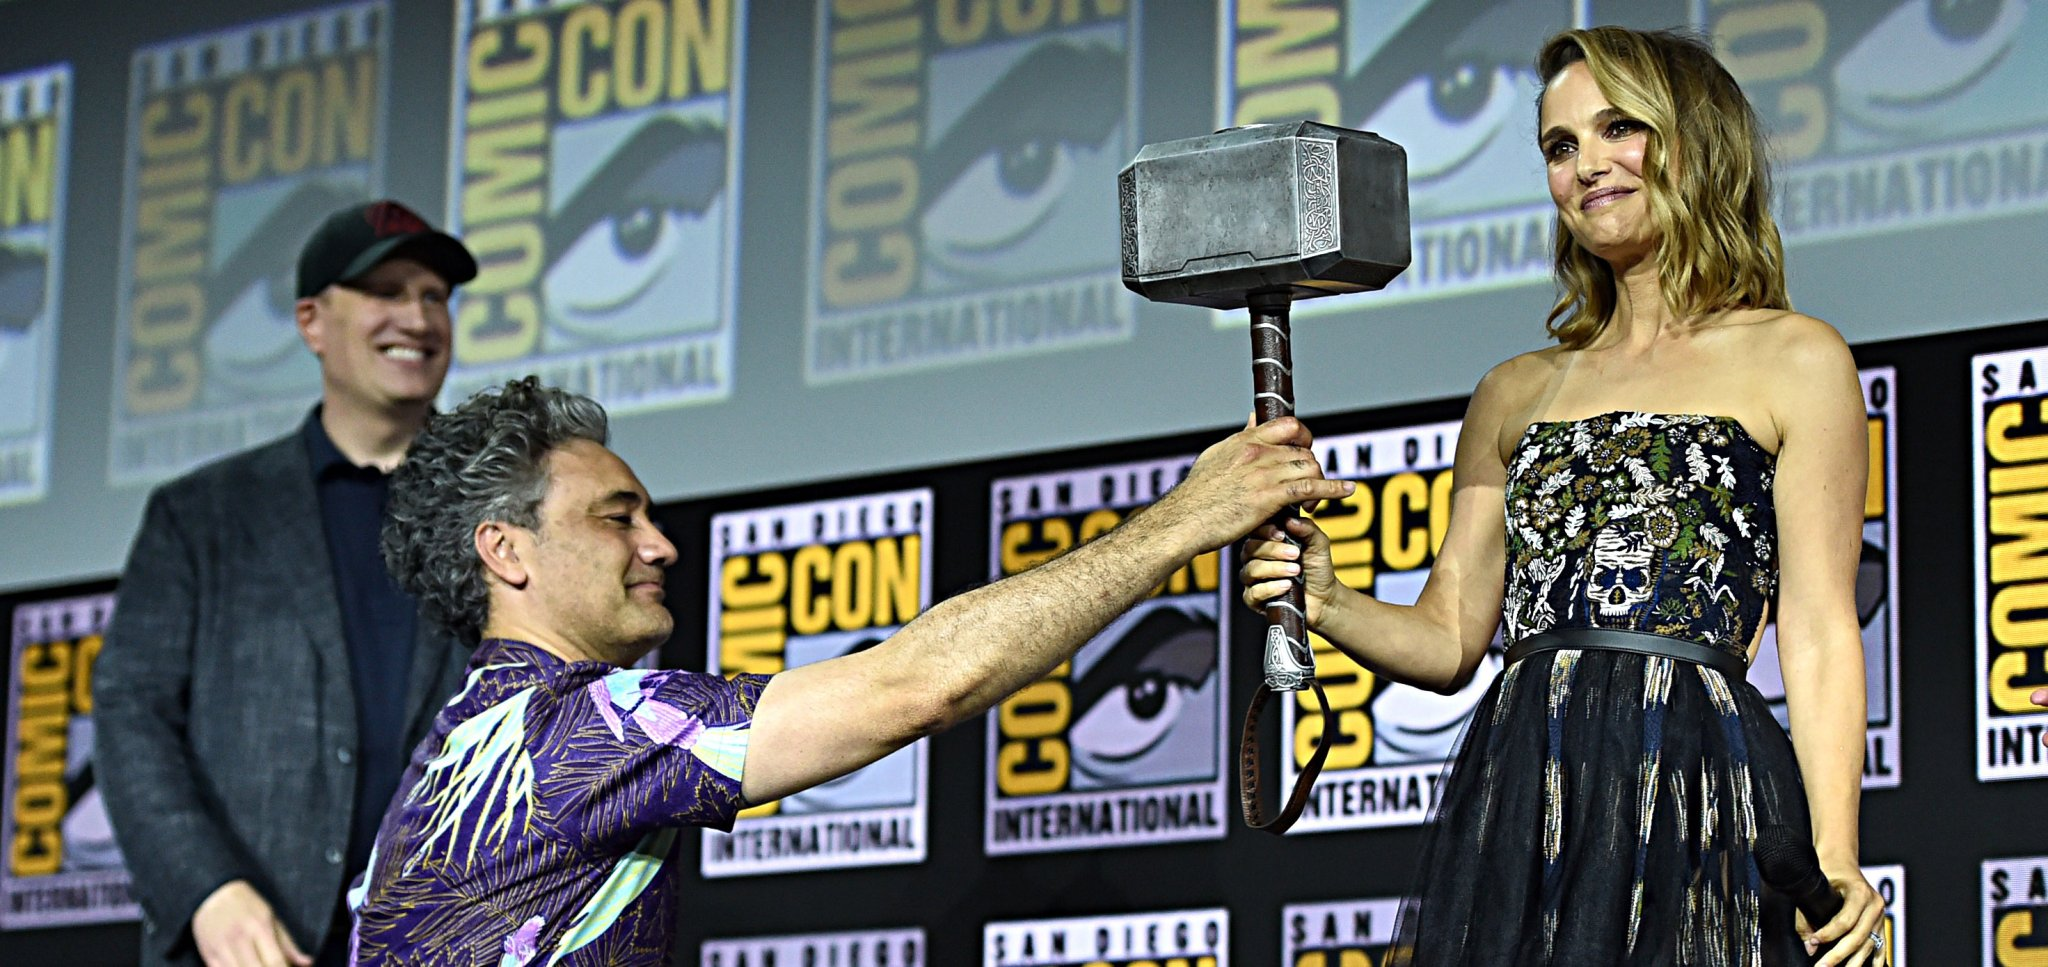 Thor: Love & Thunder Will Give Natalie Portman a Different Version of Thor's Powers